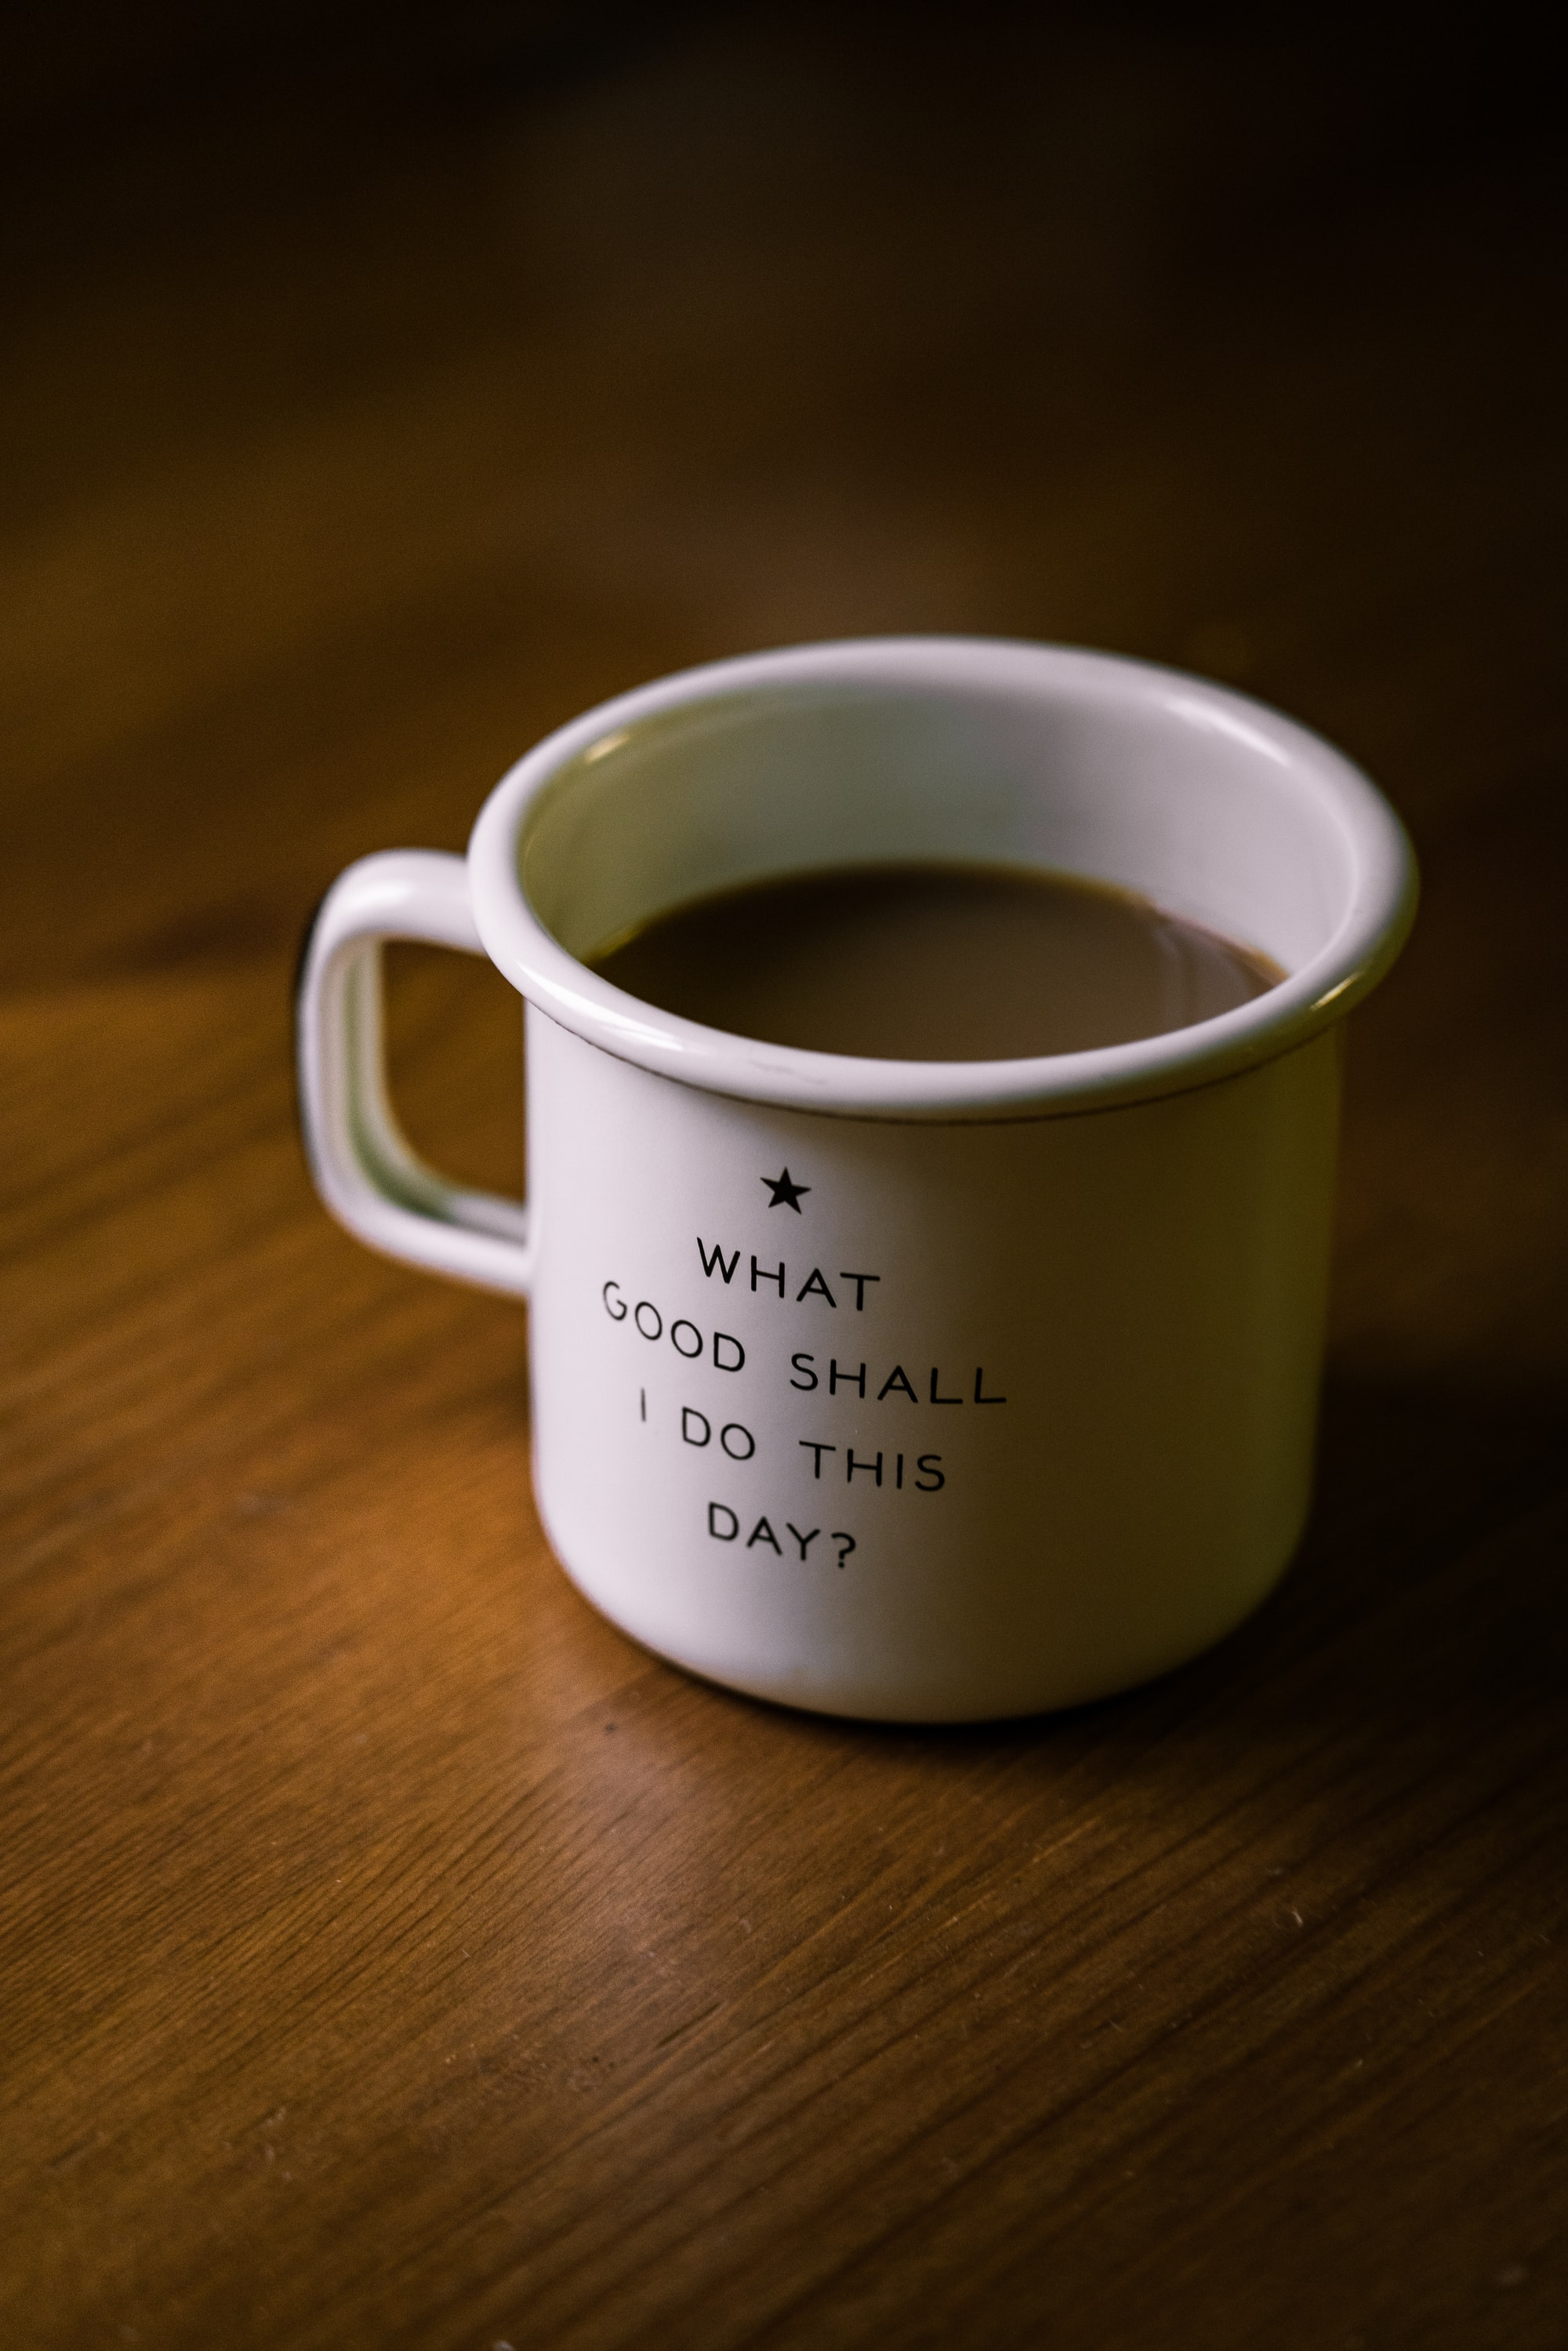 It's just the small things, but maybe it's all small things. This cup from Best Made is perhaps a good reminder of that.